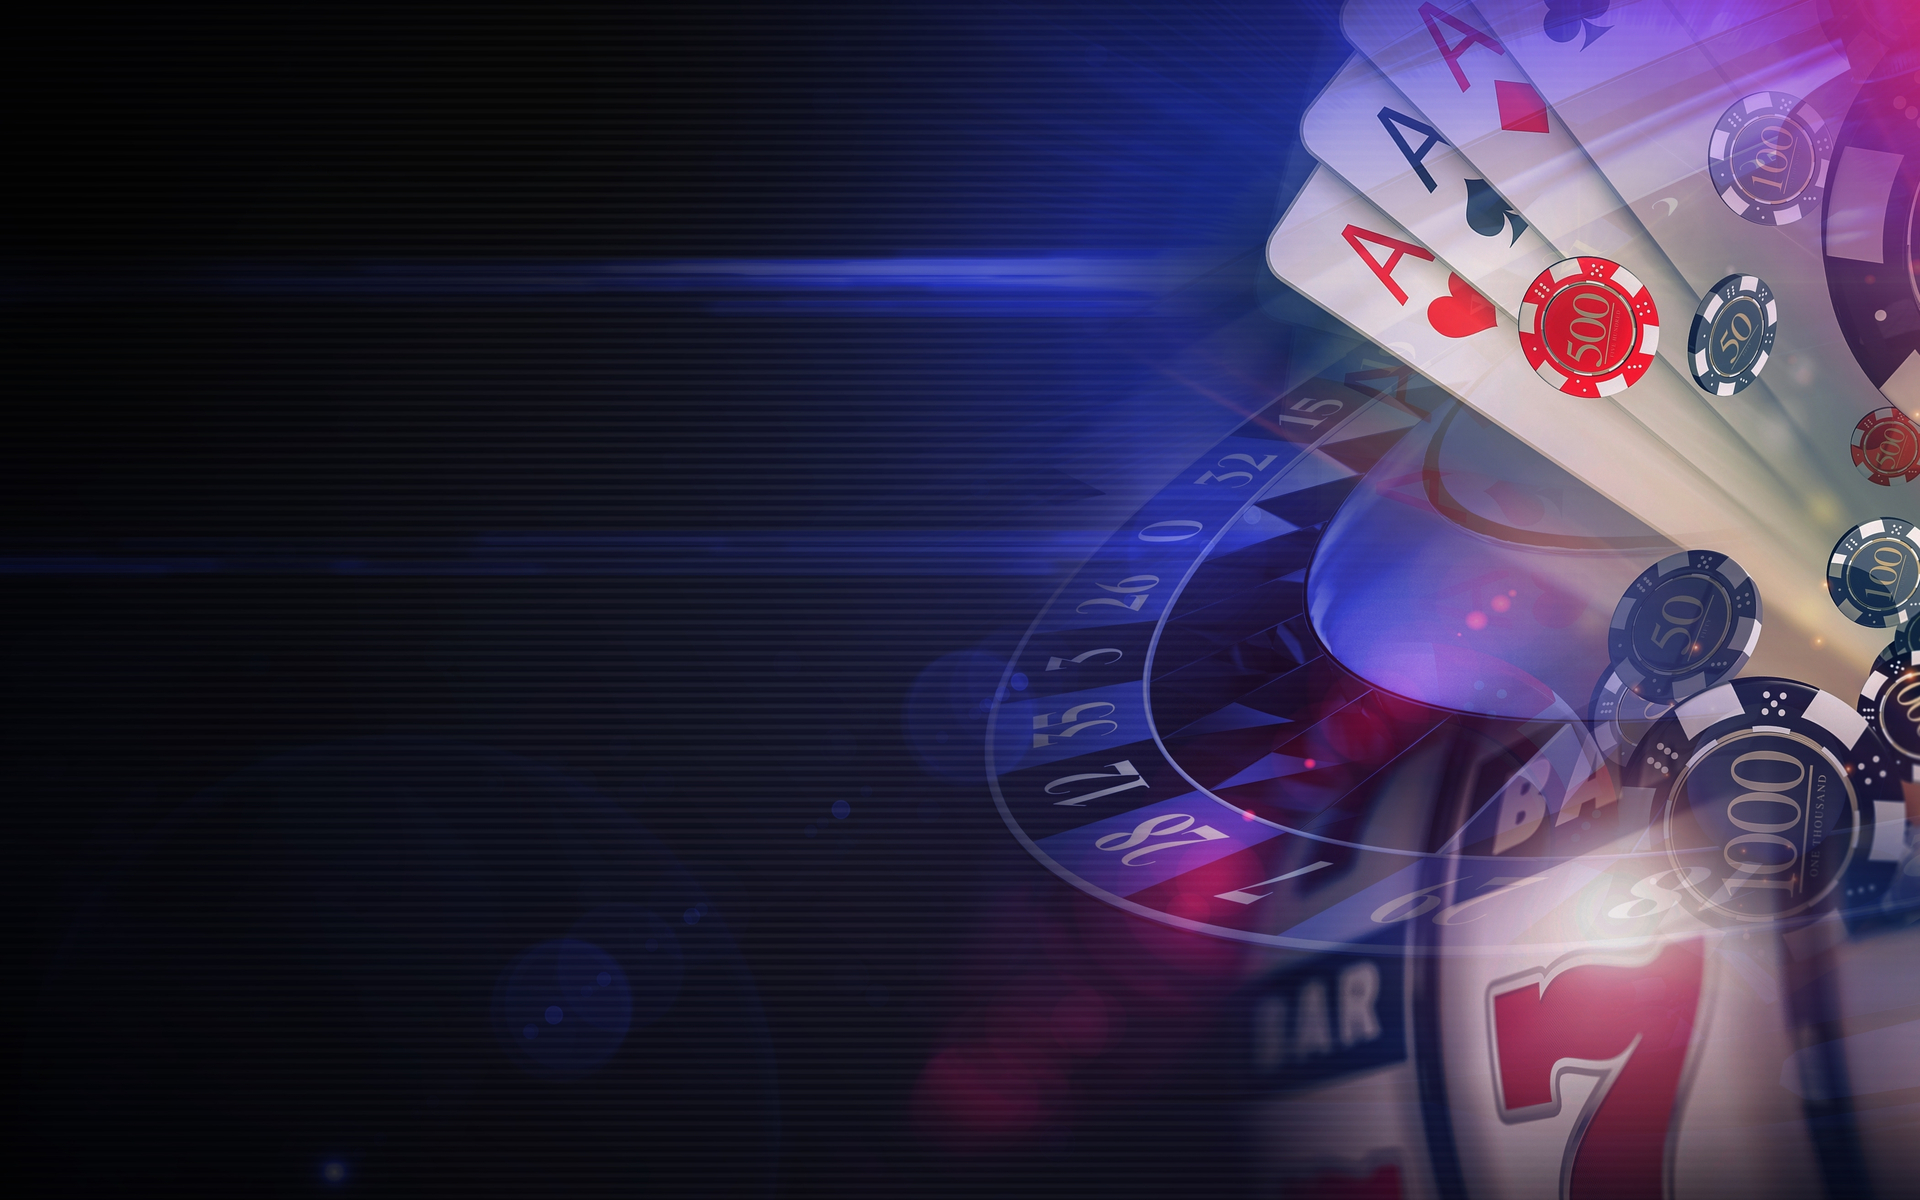 Take This Best Online Casino Check, And You'll See Your Struggles